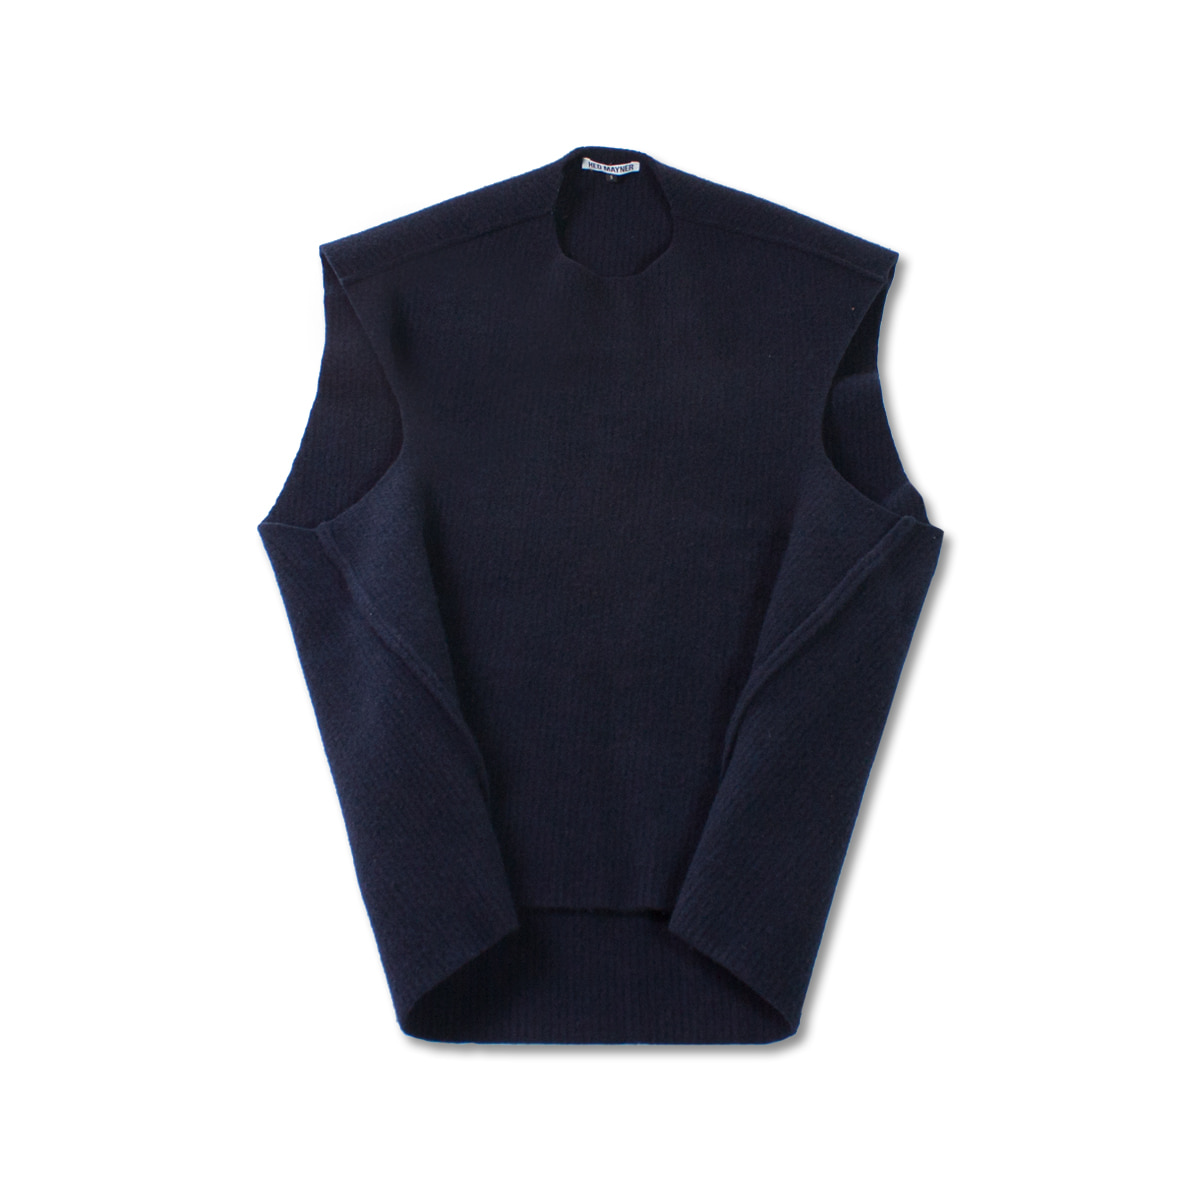 [HED MAYNER] SLEEVELESS KNIT 'NAVY'